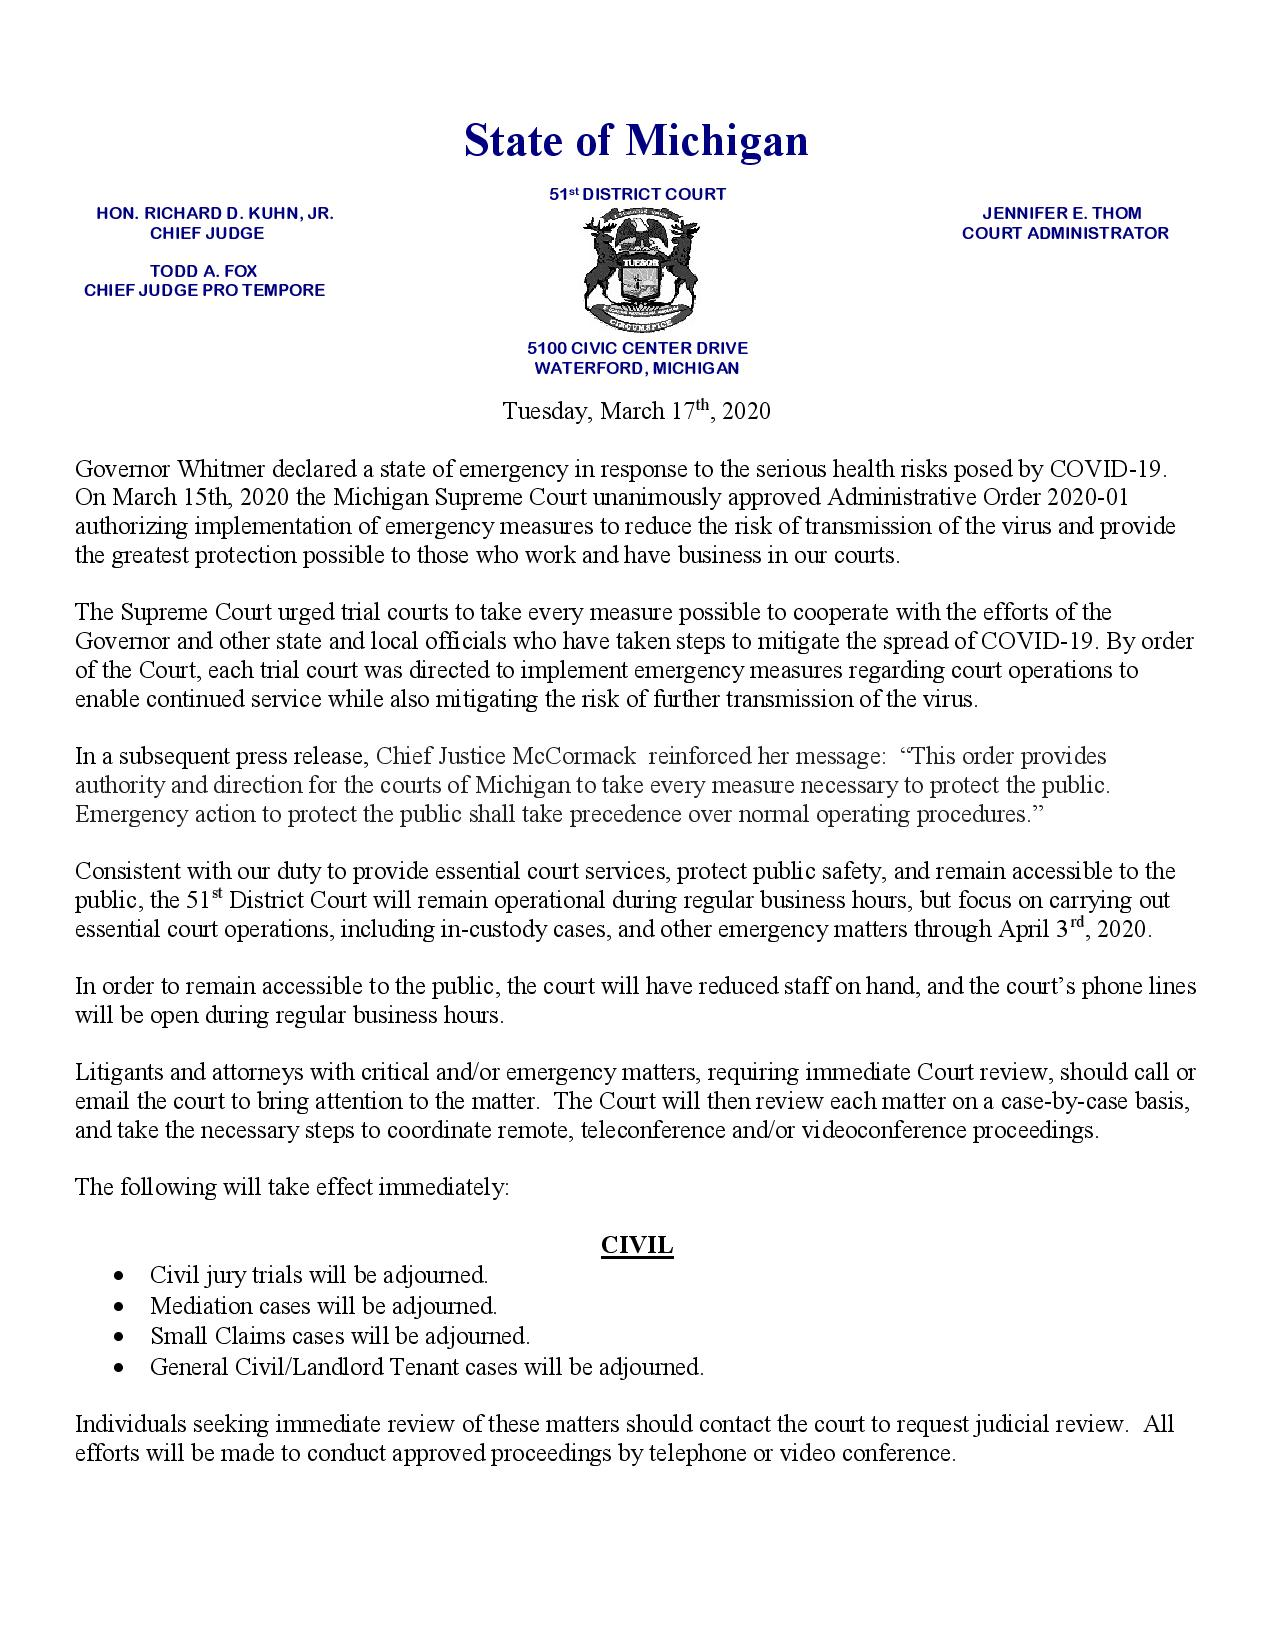 D51 Public Notice Update - Tuesday March 17th 2020-page-001